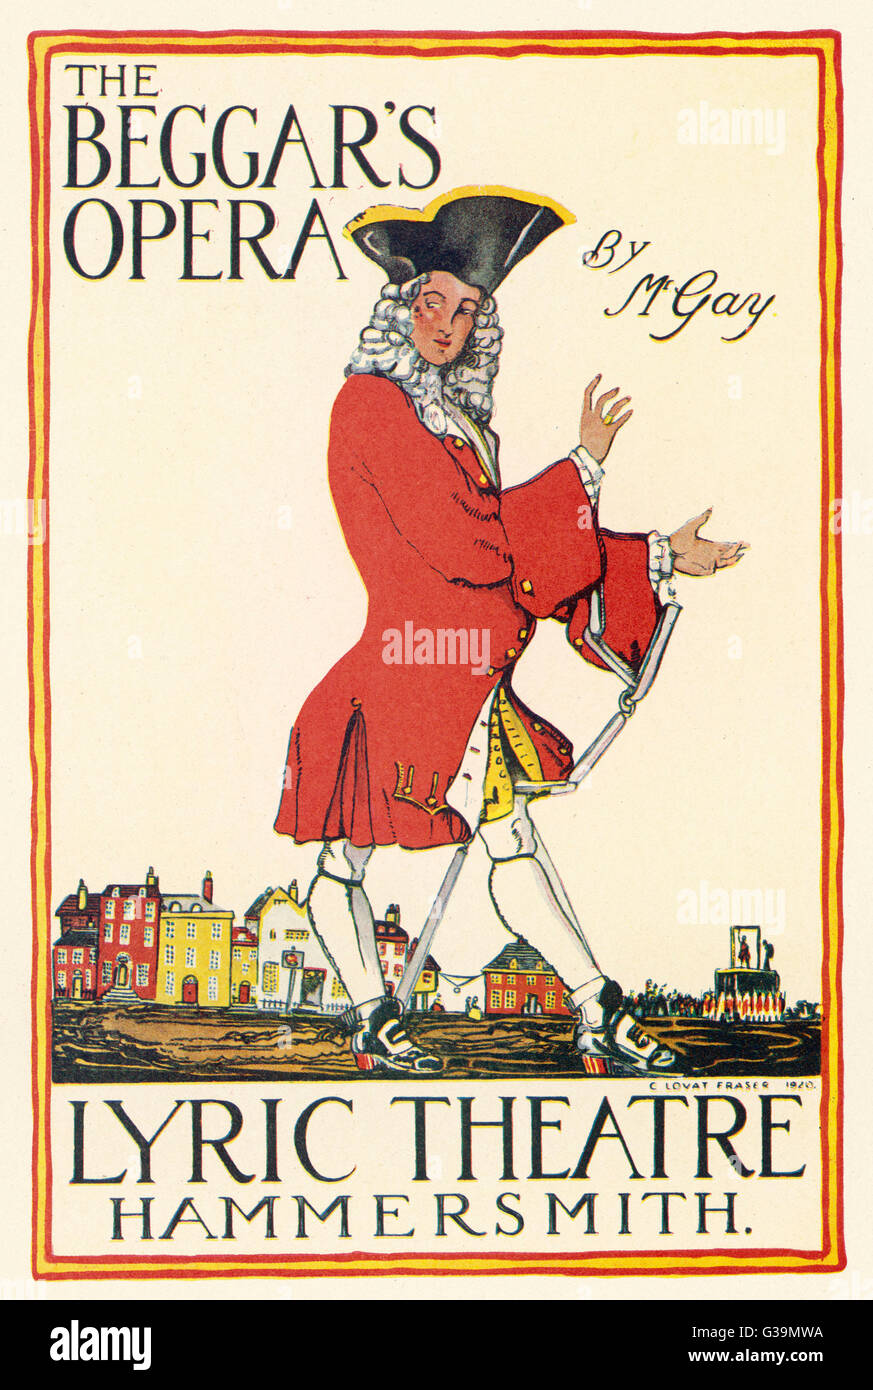 Poster for production at the  Lyric Theatre, Hammersmith  (London)        Date: 1920 - Stock Image